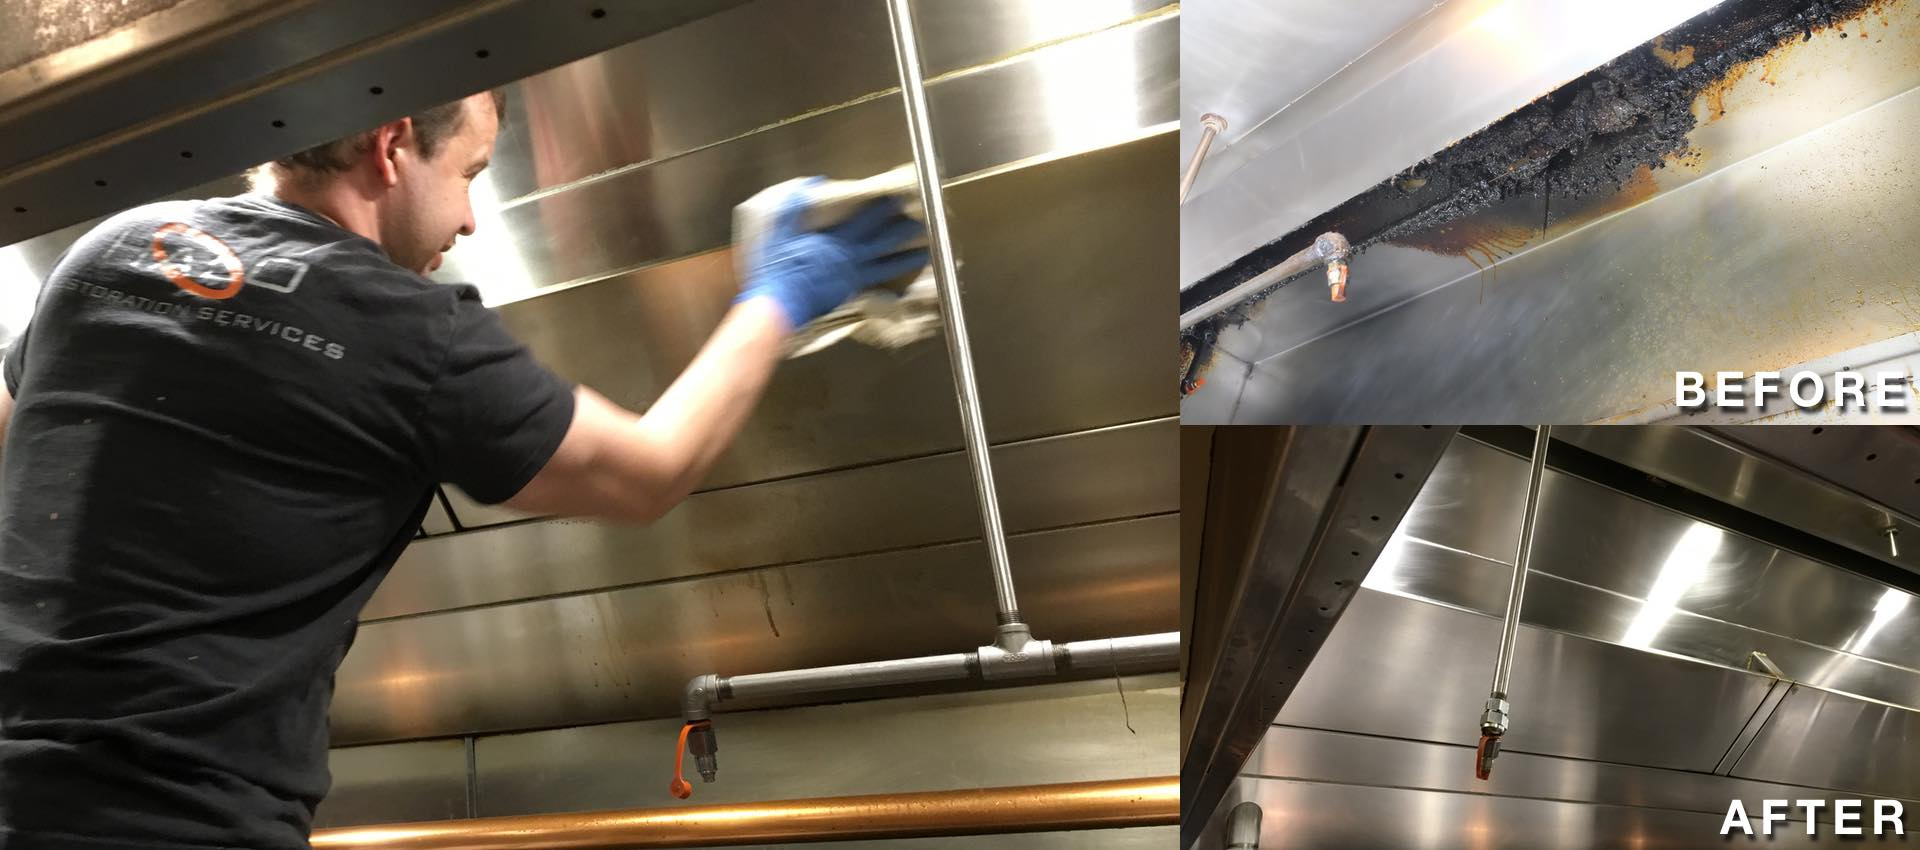 Cleaning a commercial vent a hood system in Dallas, Texas